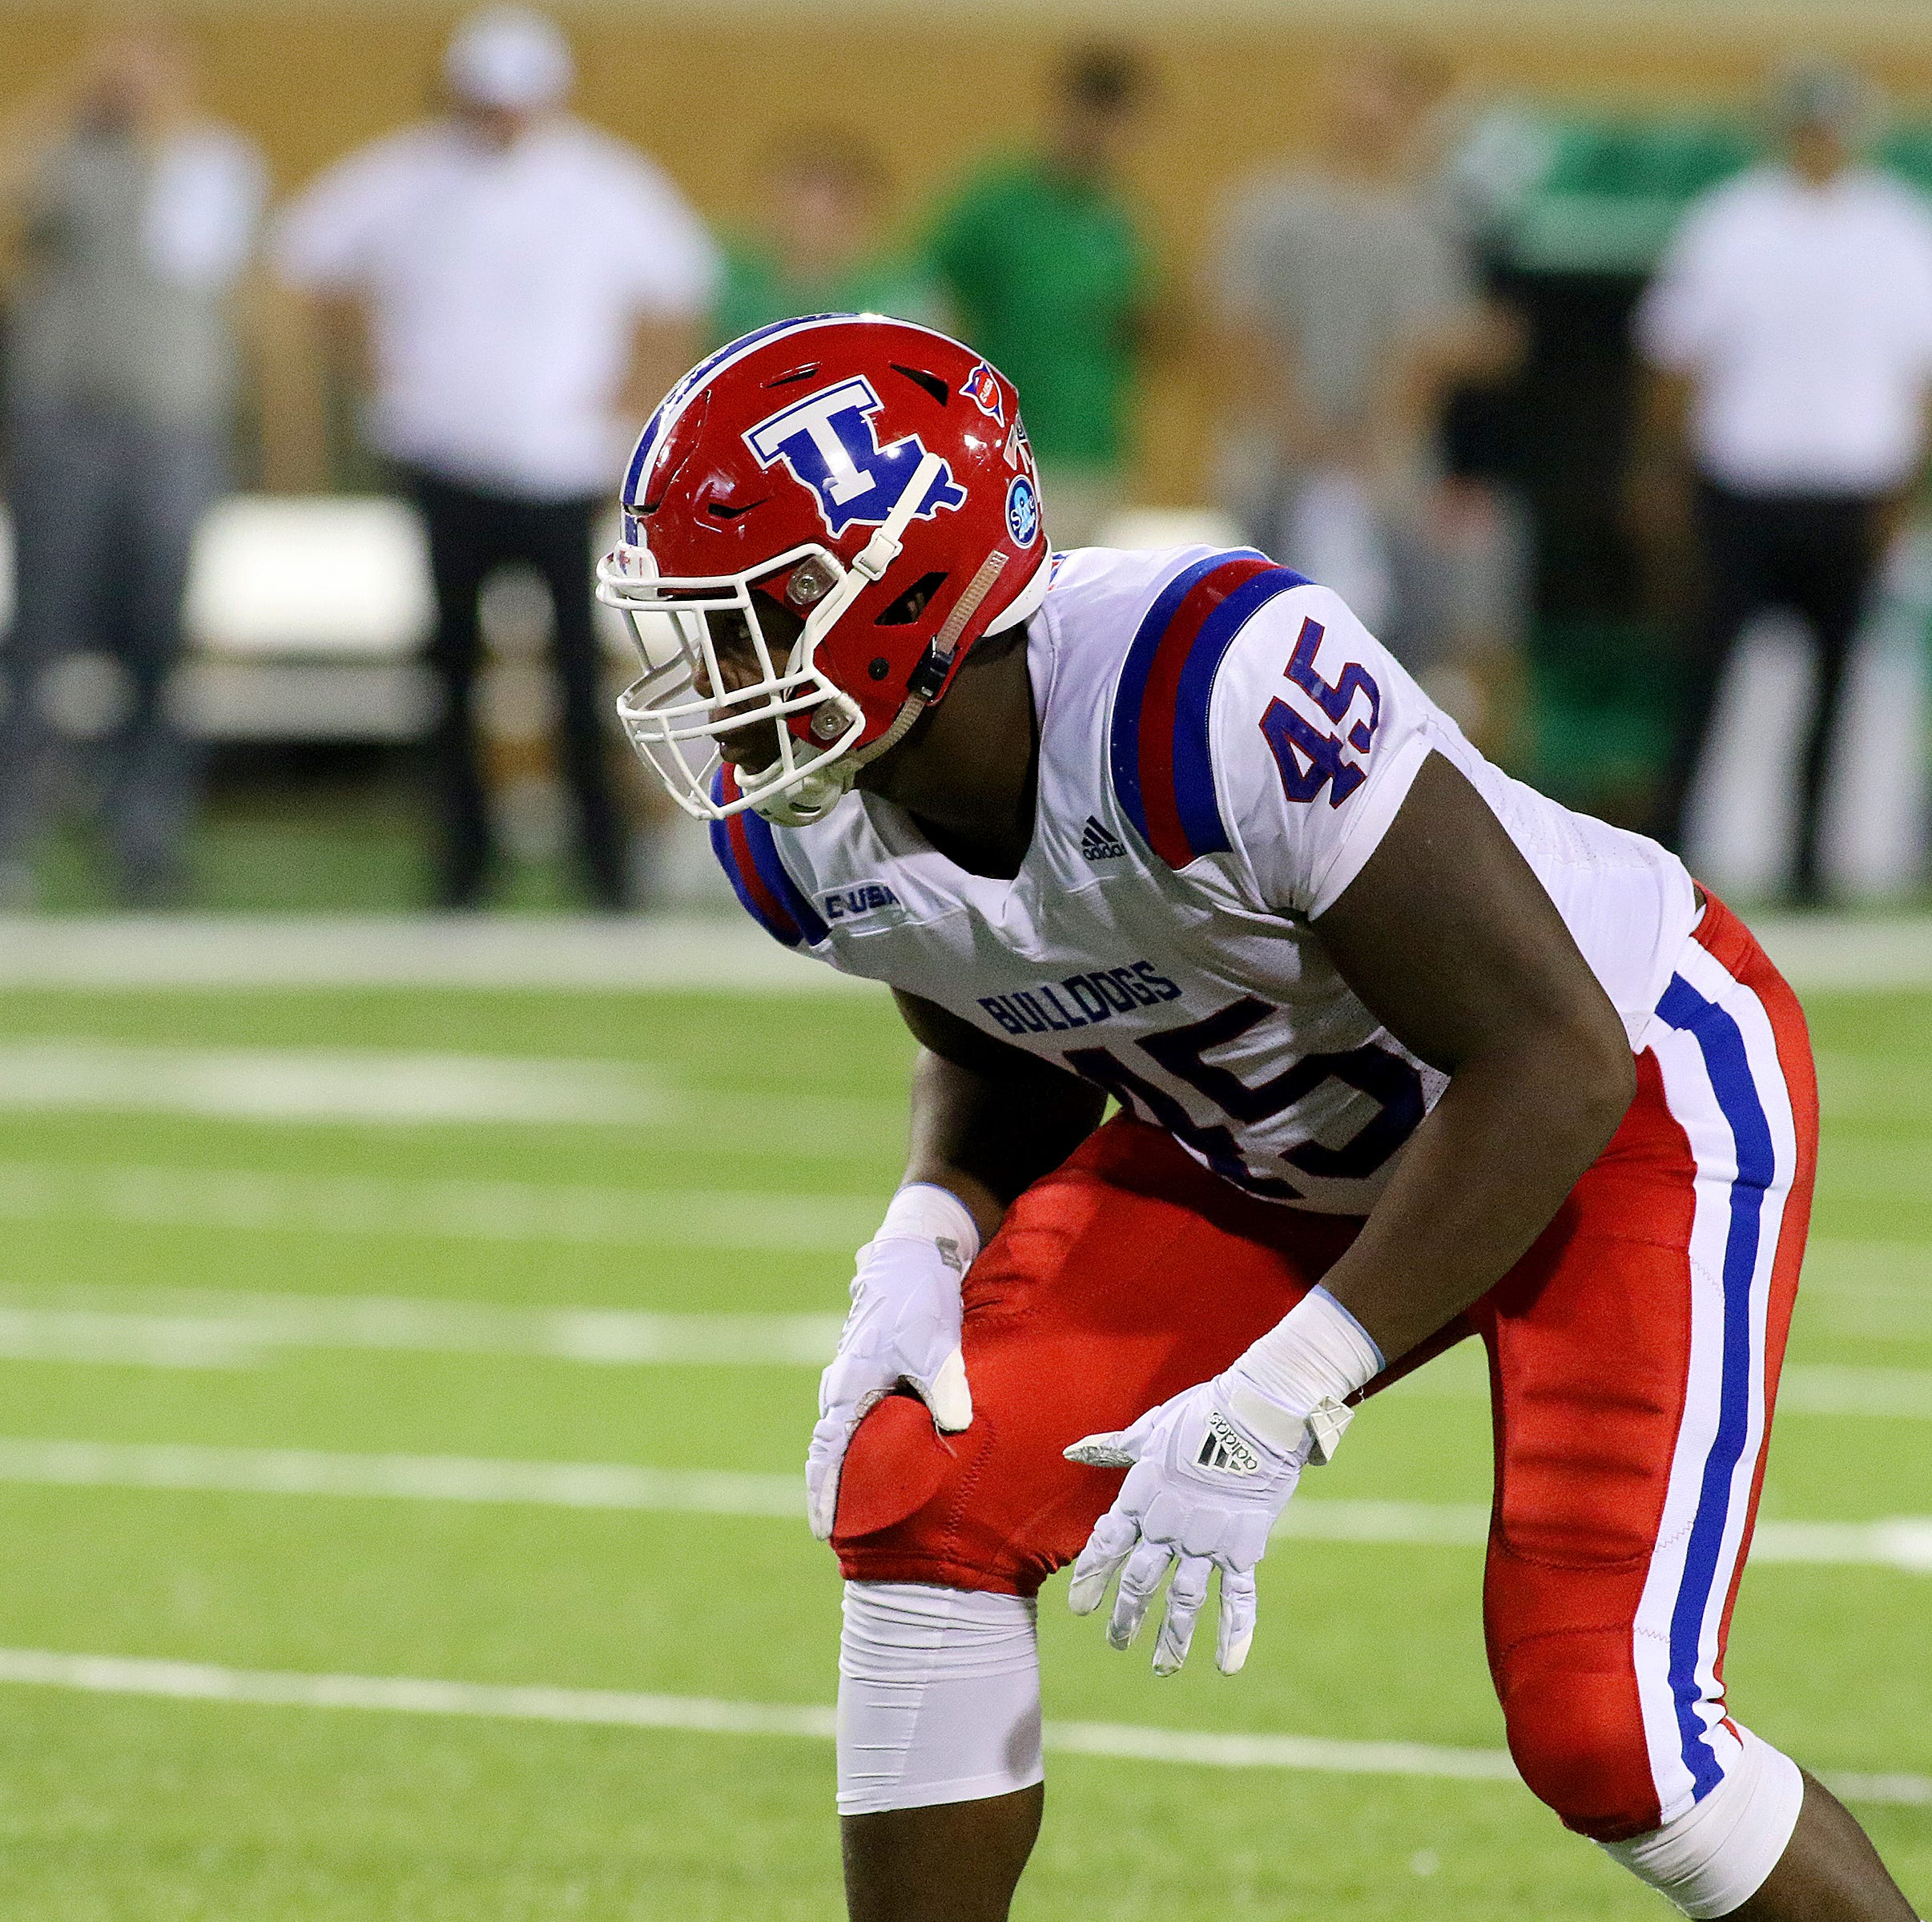 Louisiana Tech's Jaylon Ferguson is a Ted Hendricks Award finalist